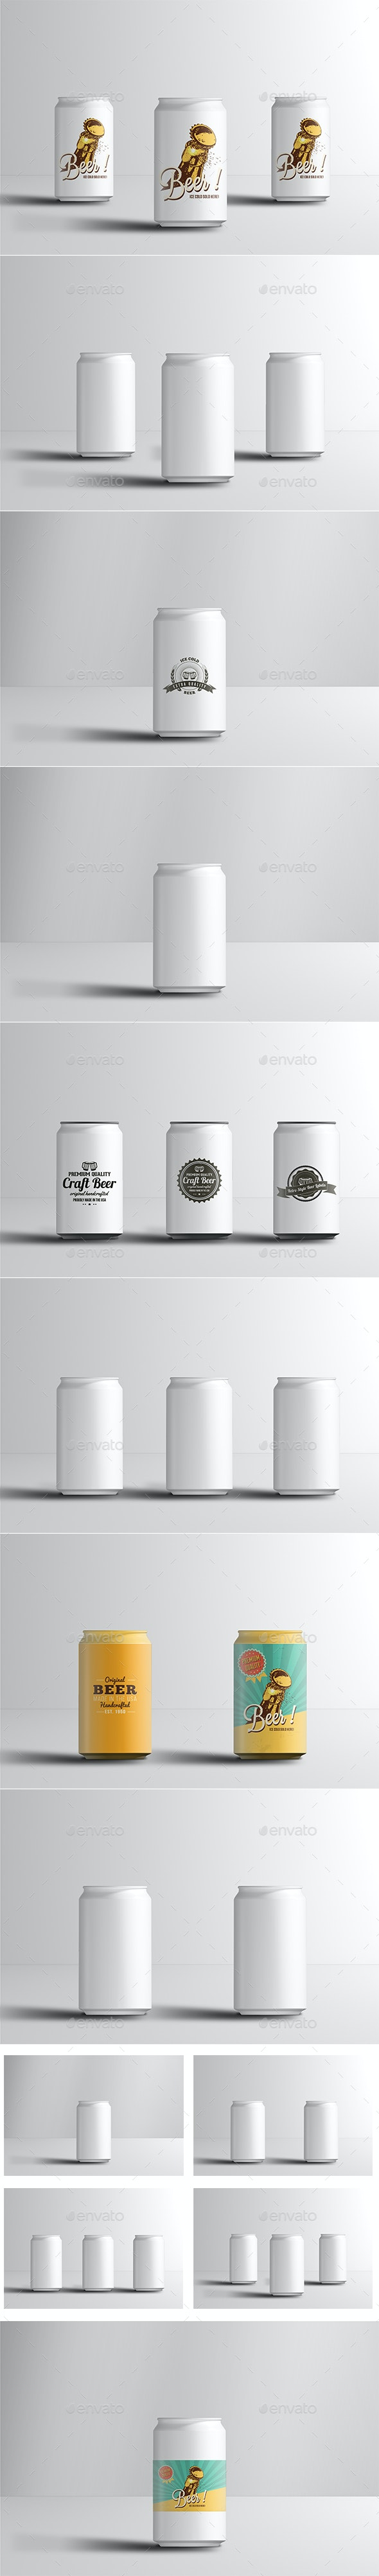 330ml Soda or Beer Can Mock-up - Food and Drink Packaging